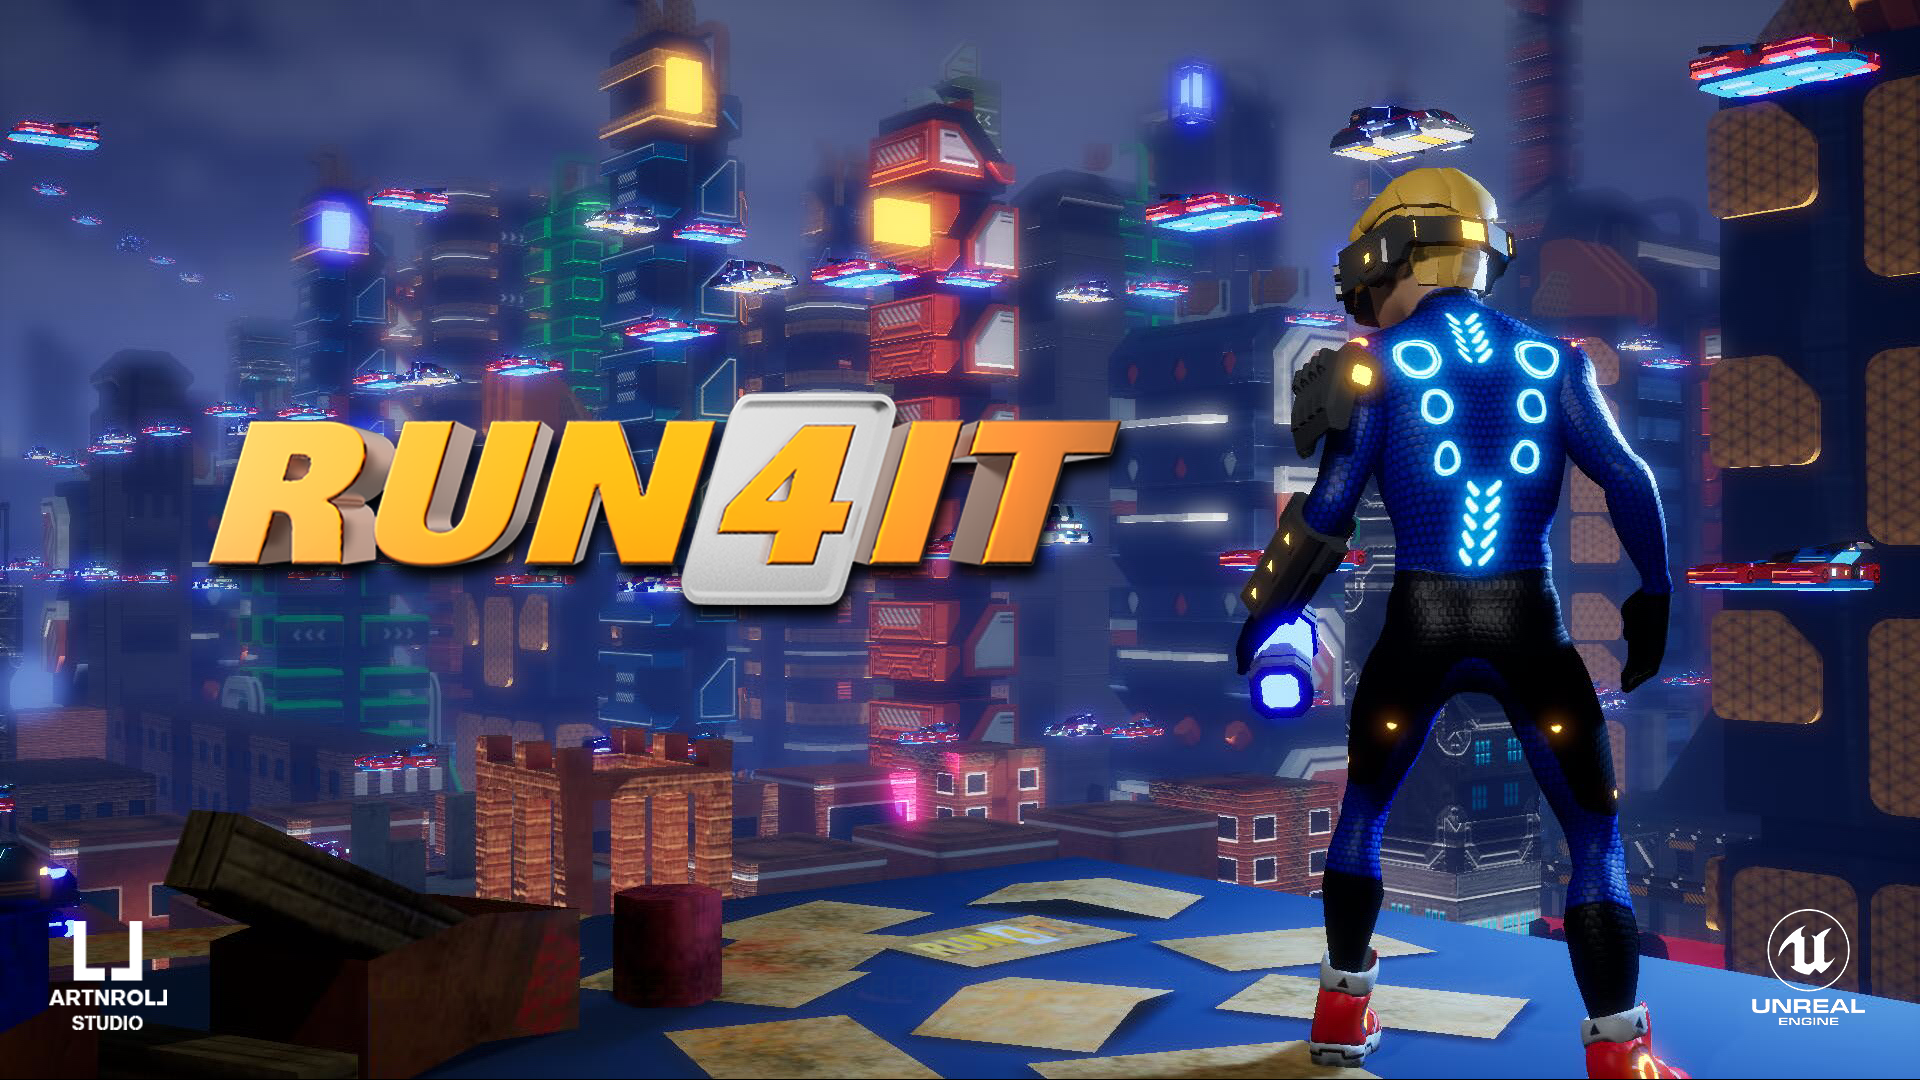 Run4it in development